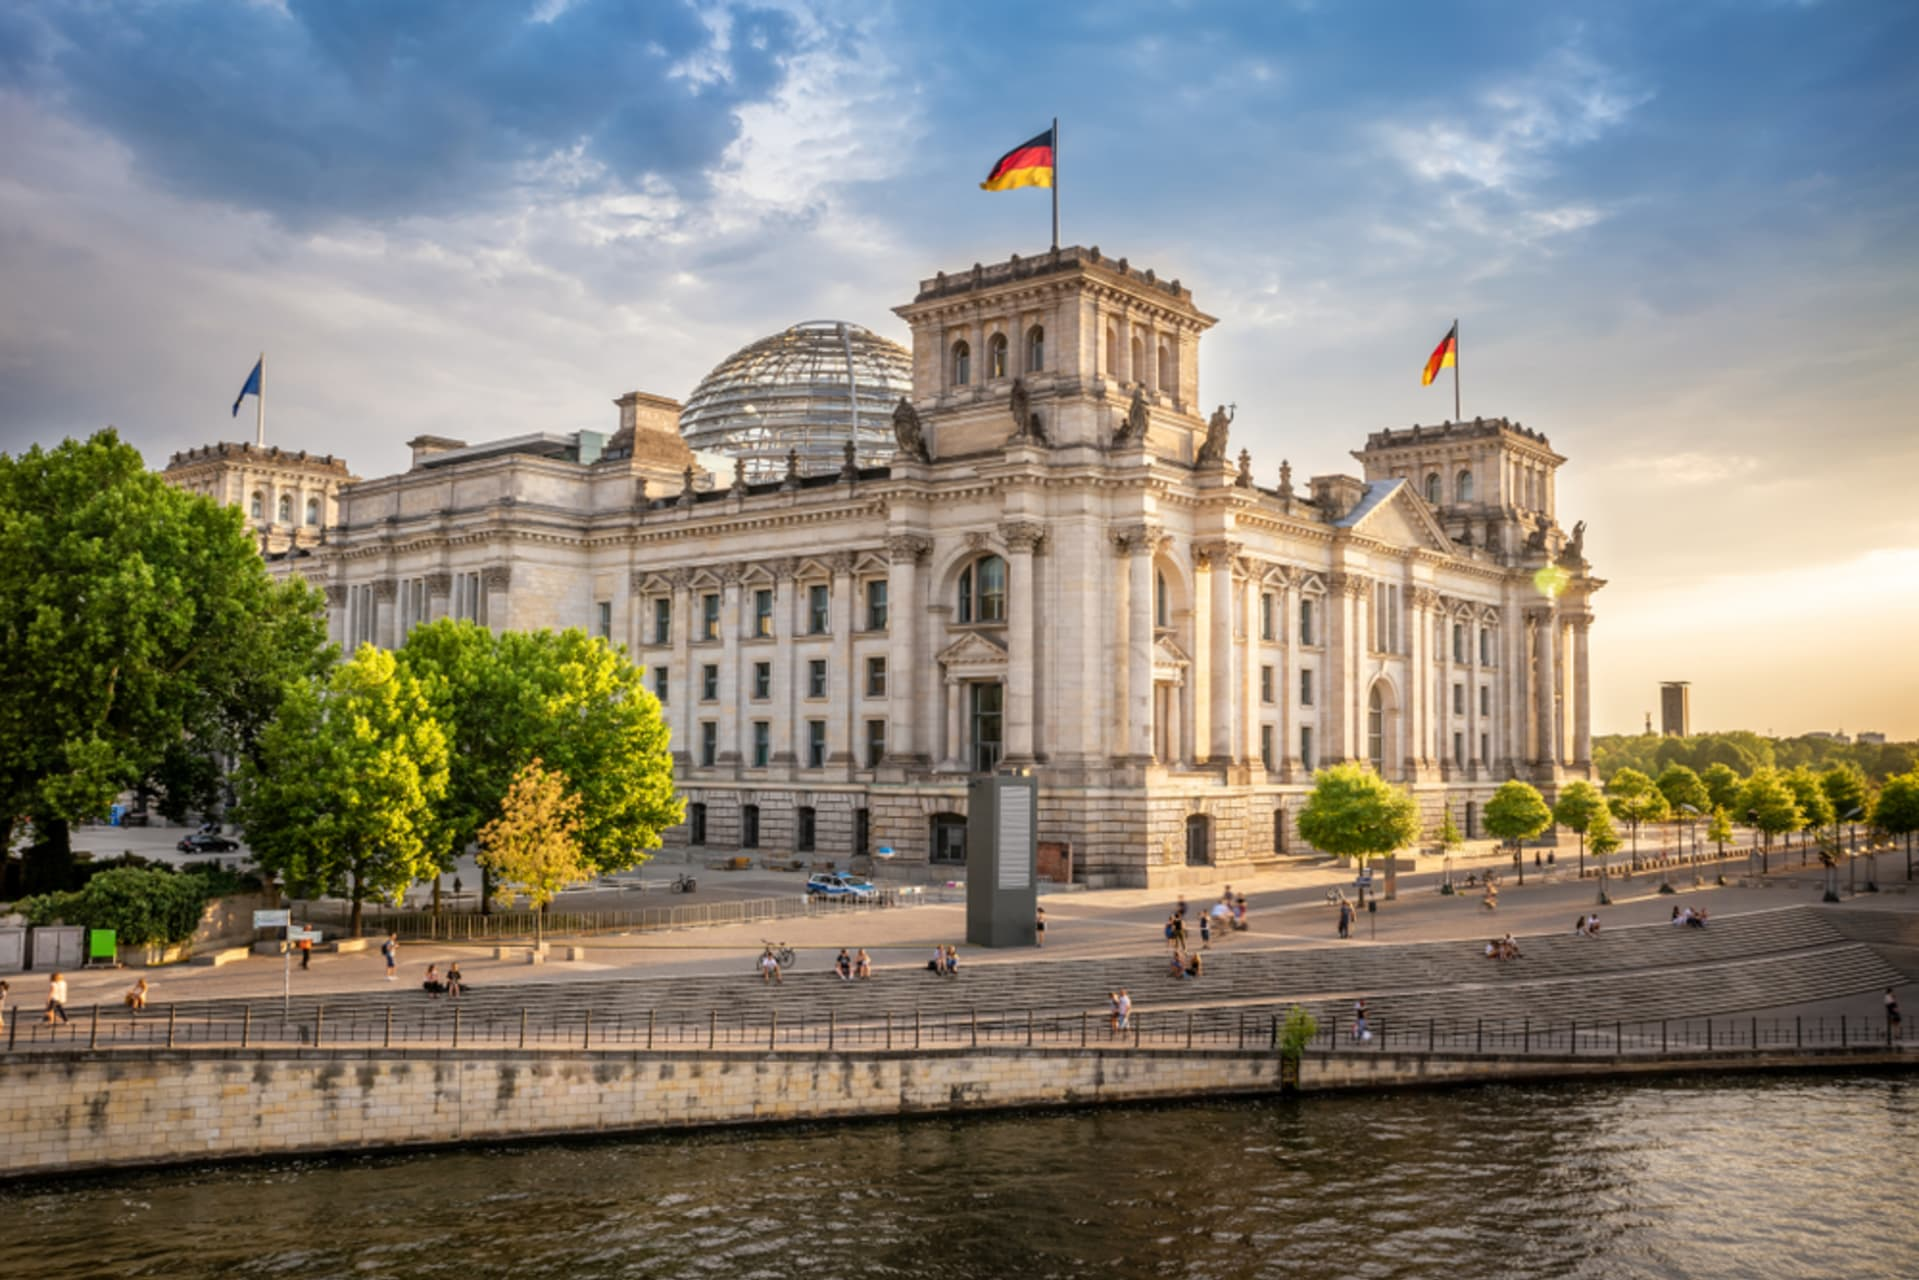 Berlin - From Brandenburg Gate to the Reichstag: A Walk across Berlin's Government District